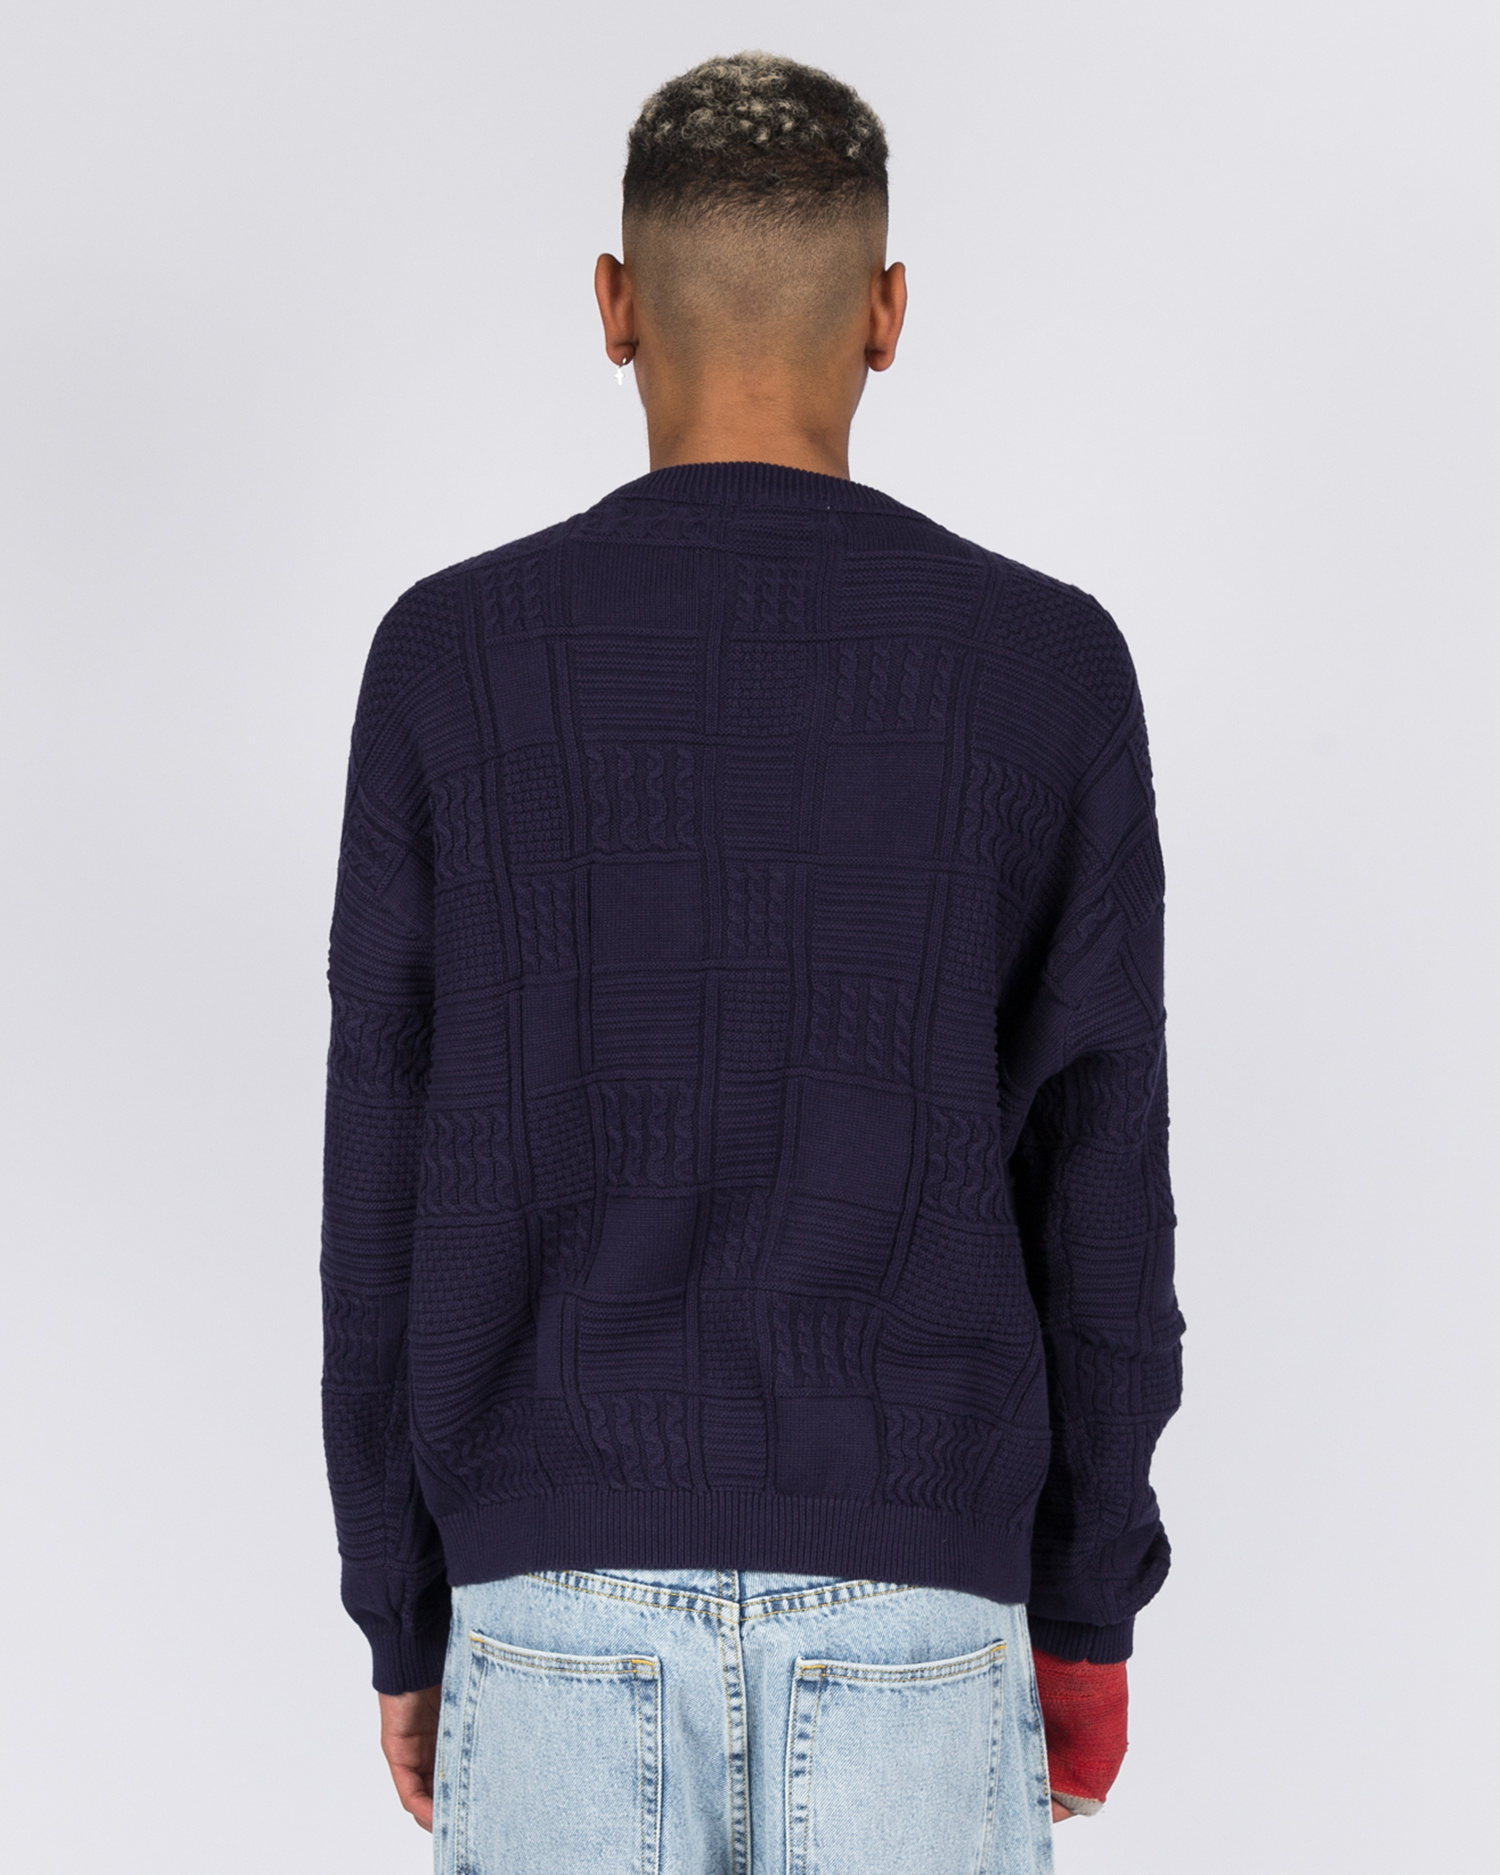 Yardsale Knitwear Navy